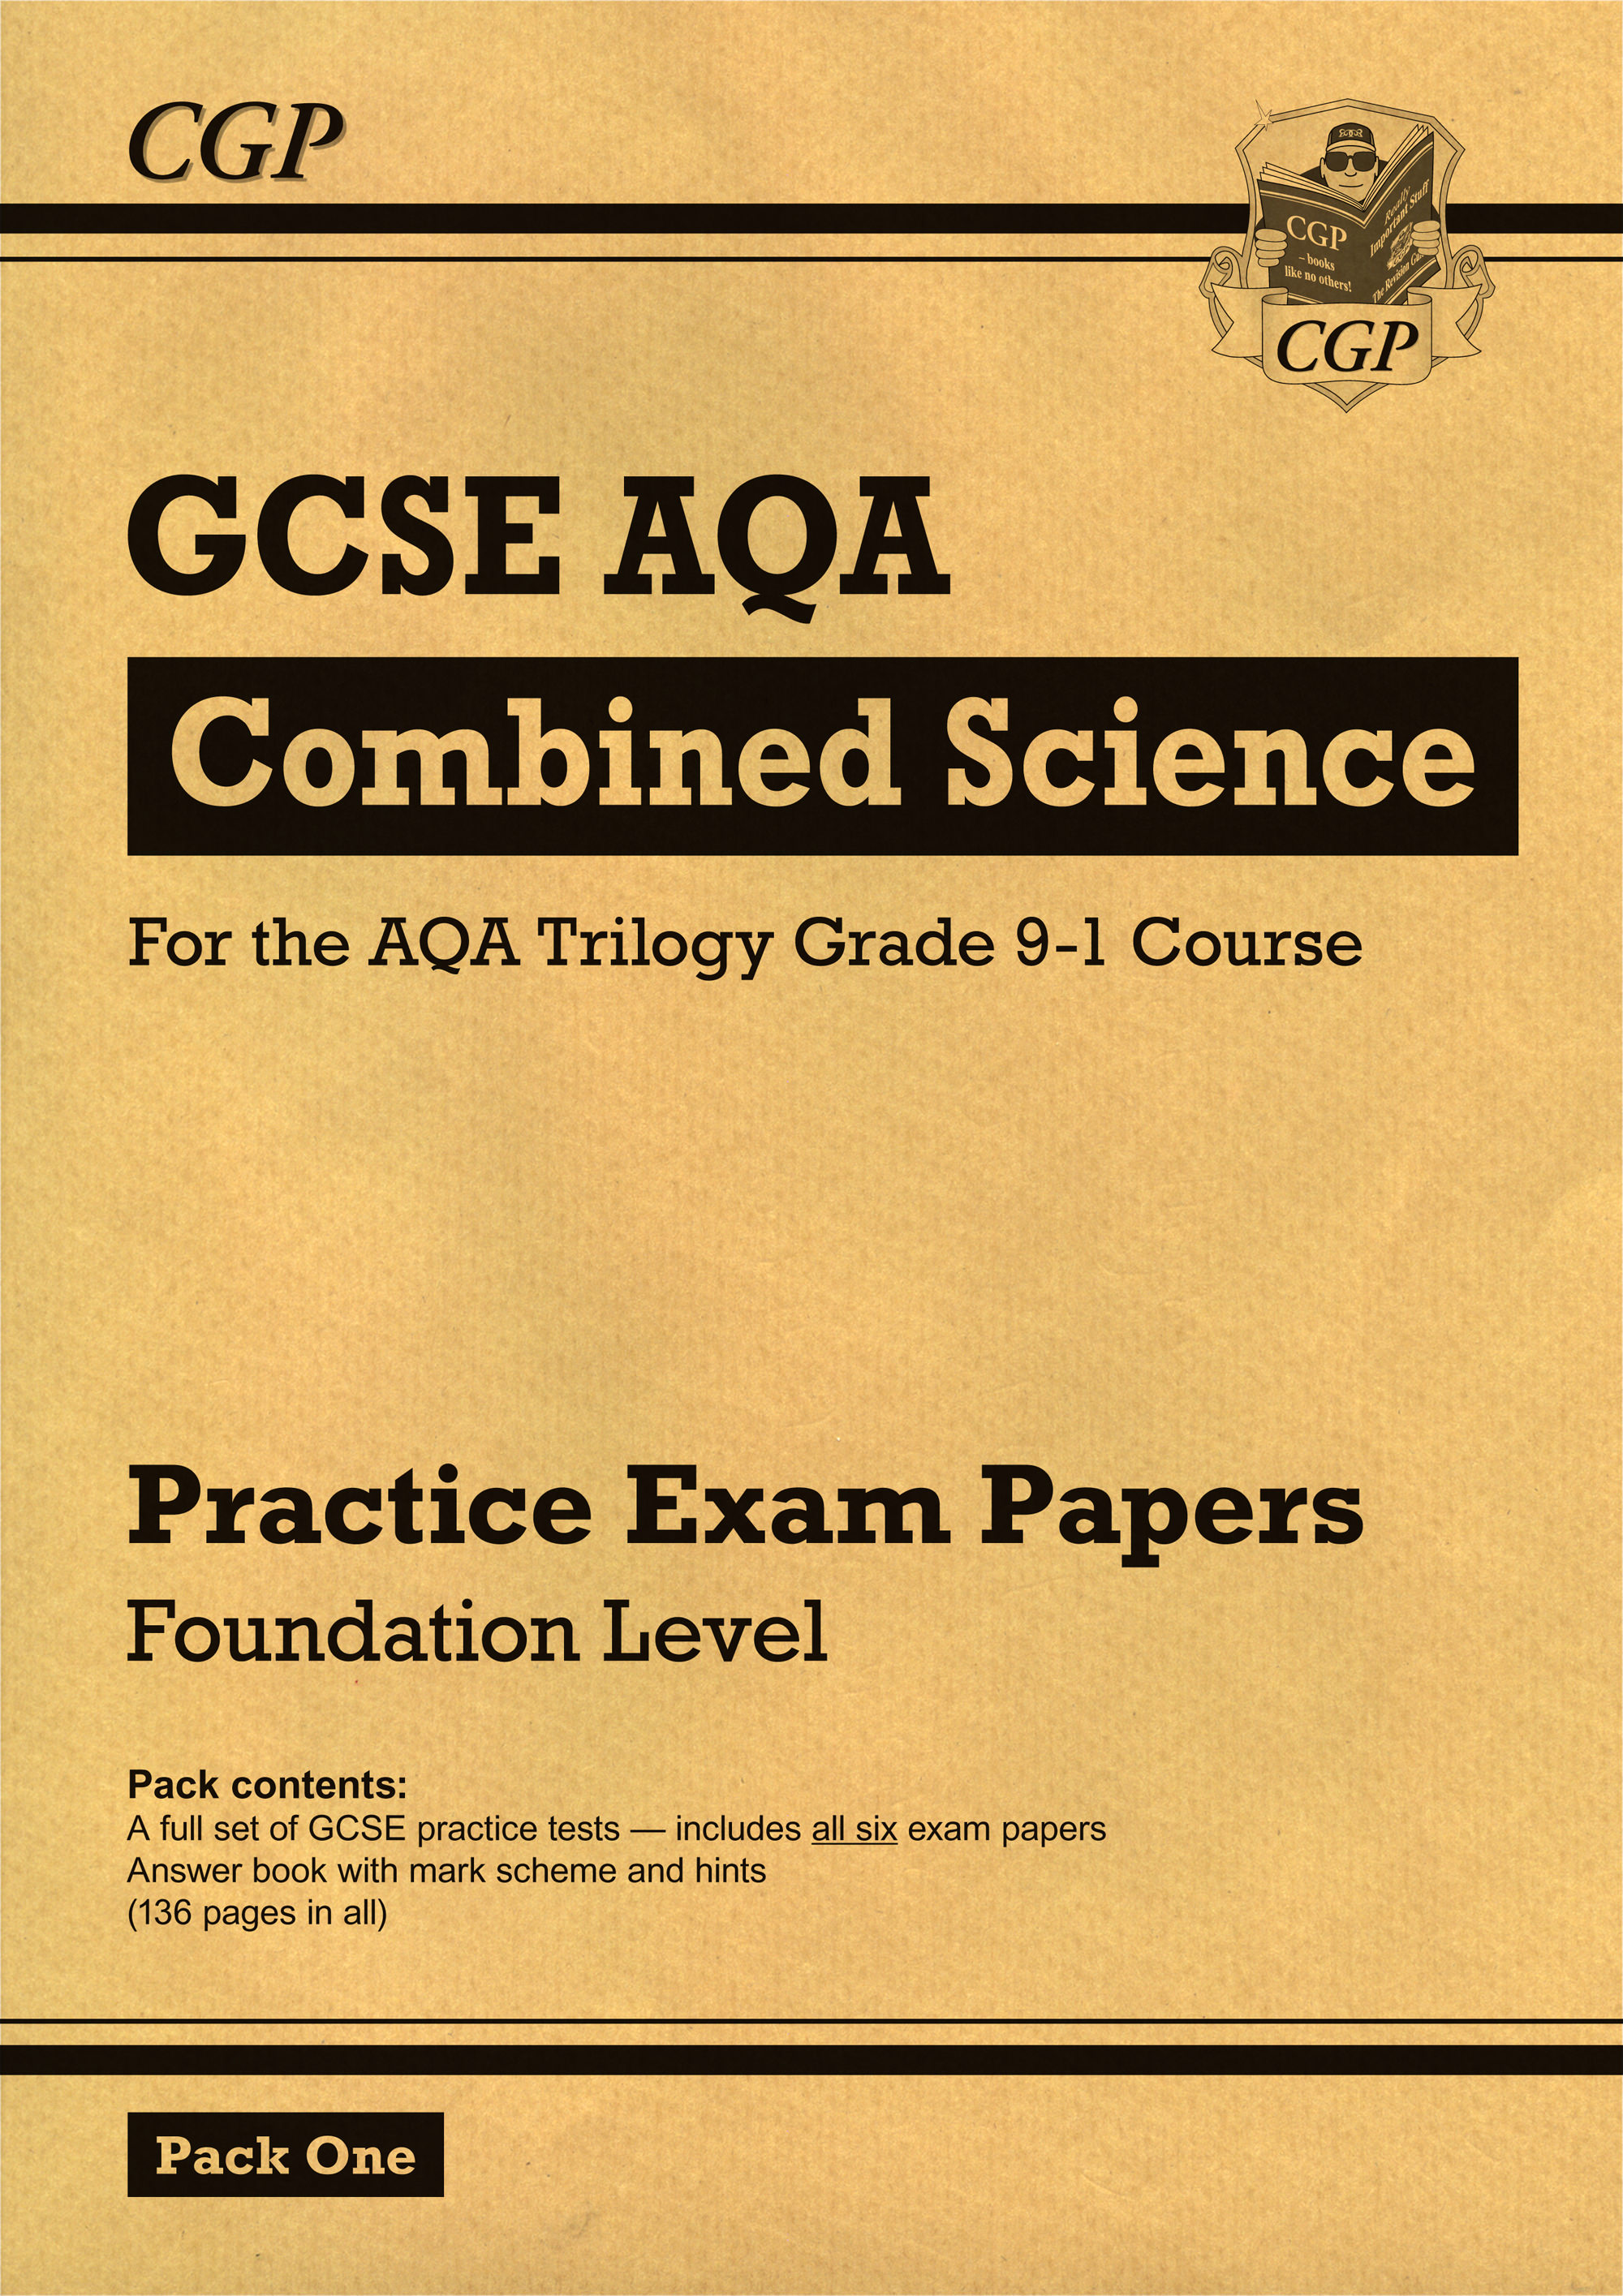 SAFP45 - Grade 9-1 GCSE Combined Science AQA Practice Papers: Foundation Pack 1